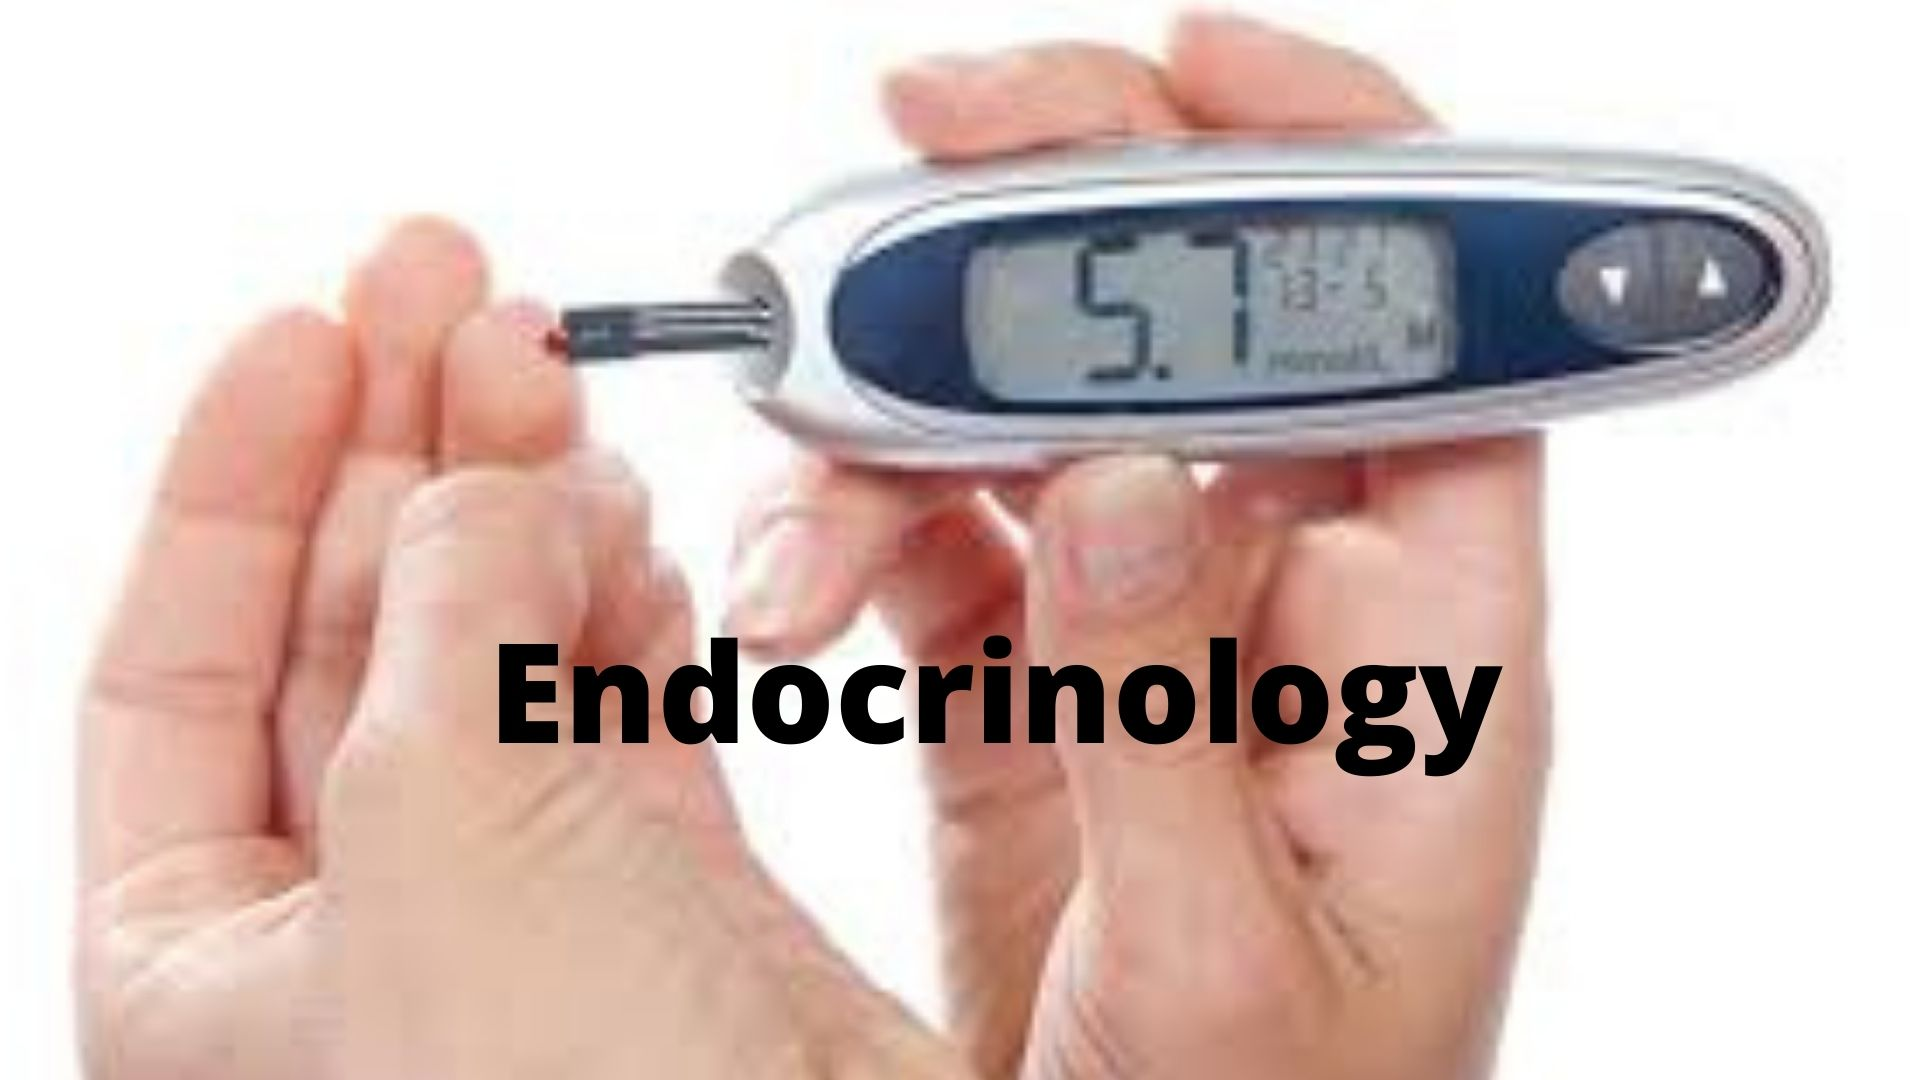 Endocrinology Photo